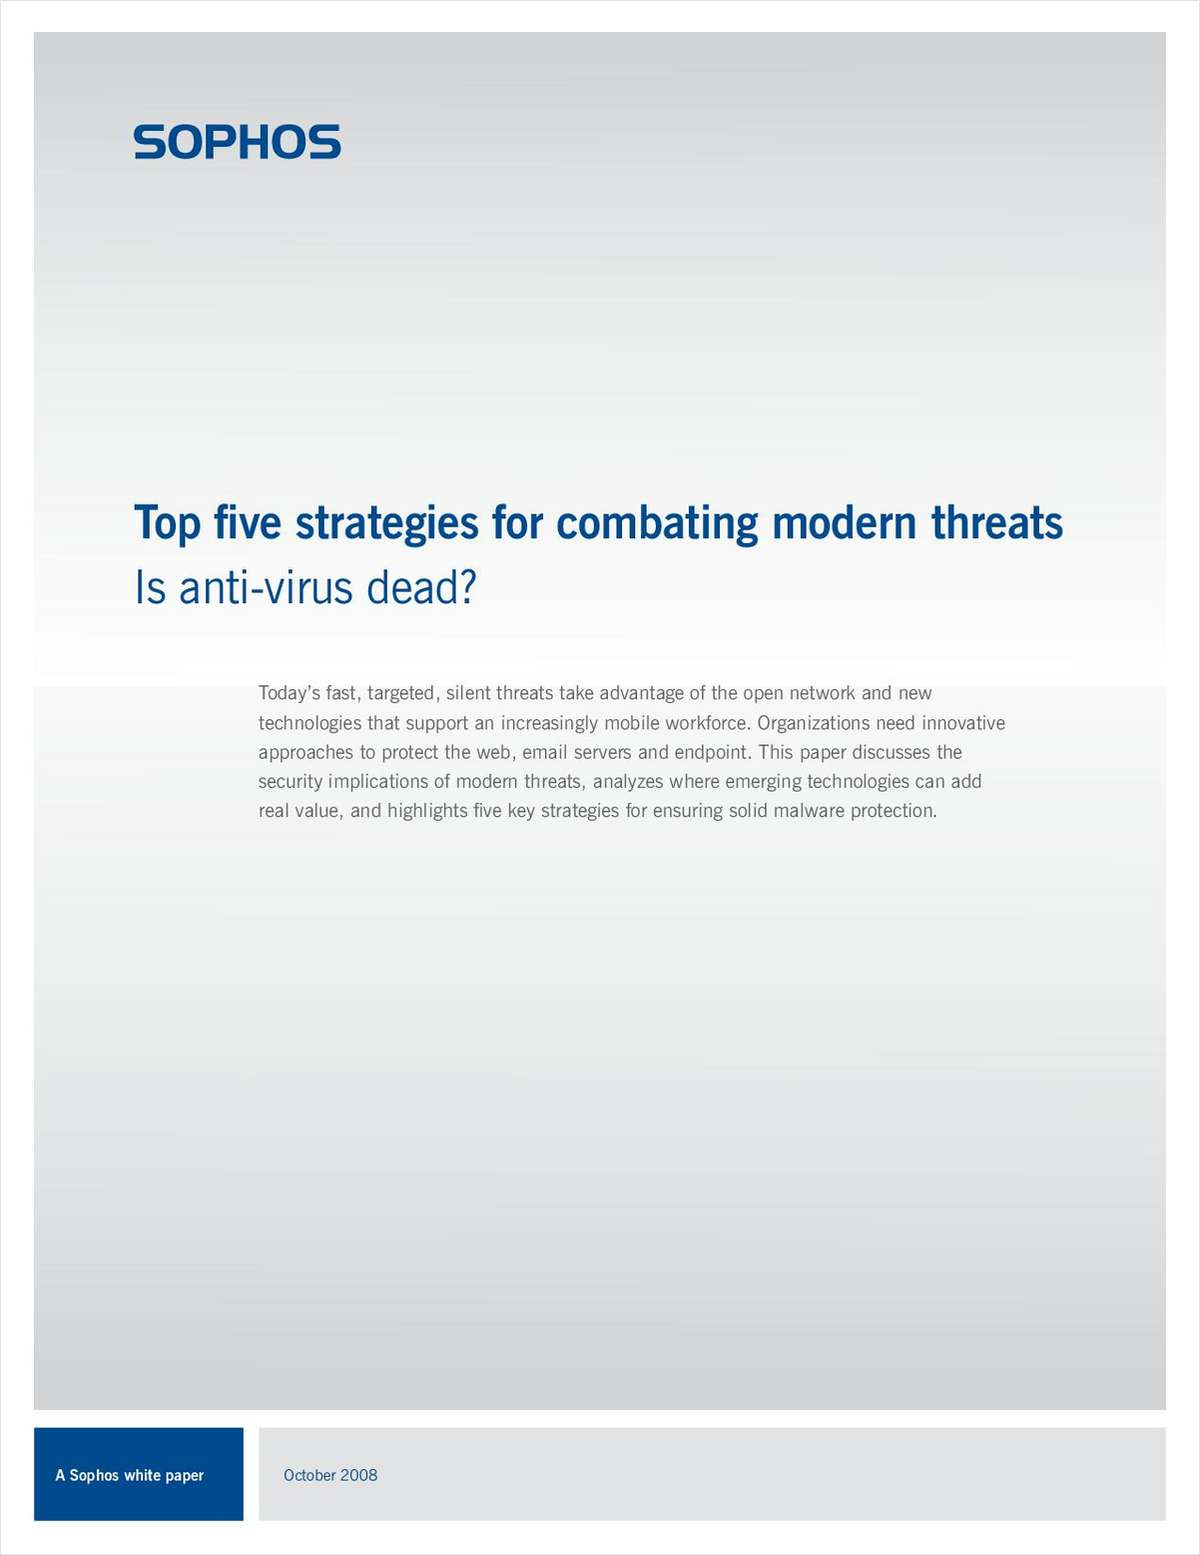 Top Five Strategies for Combating Modern Threats: Is Anti-Virus Dead?